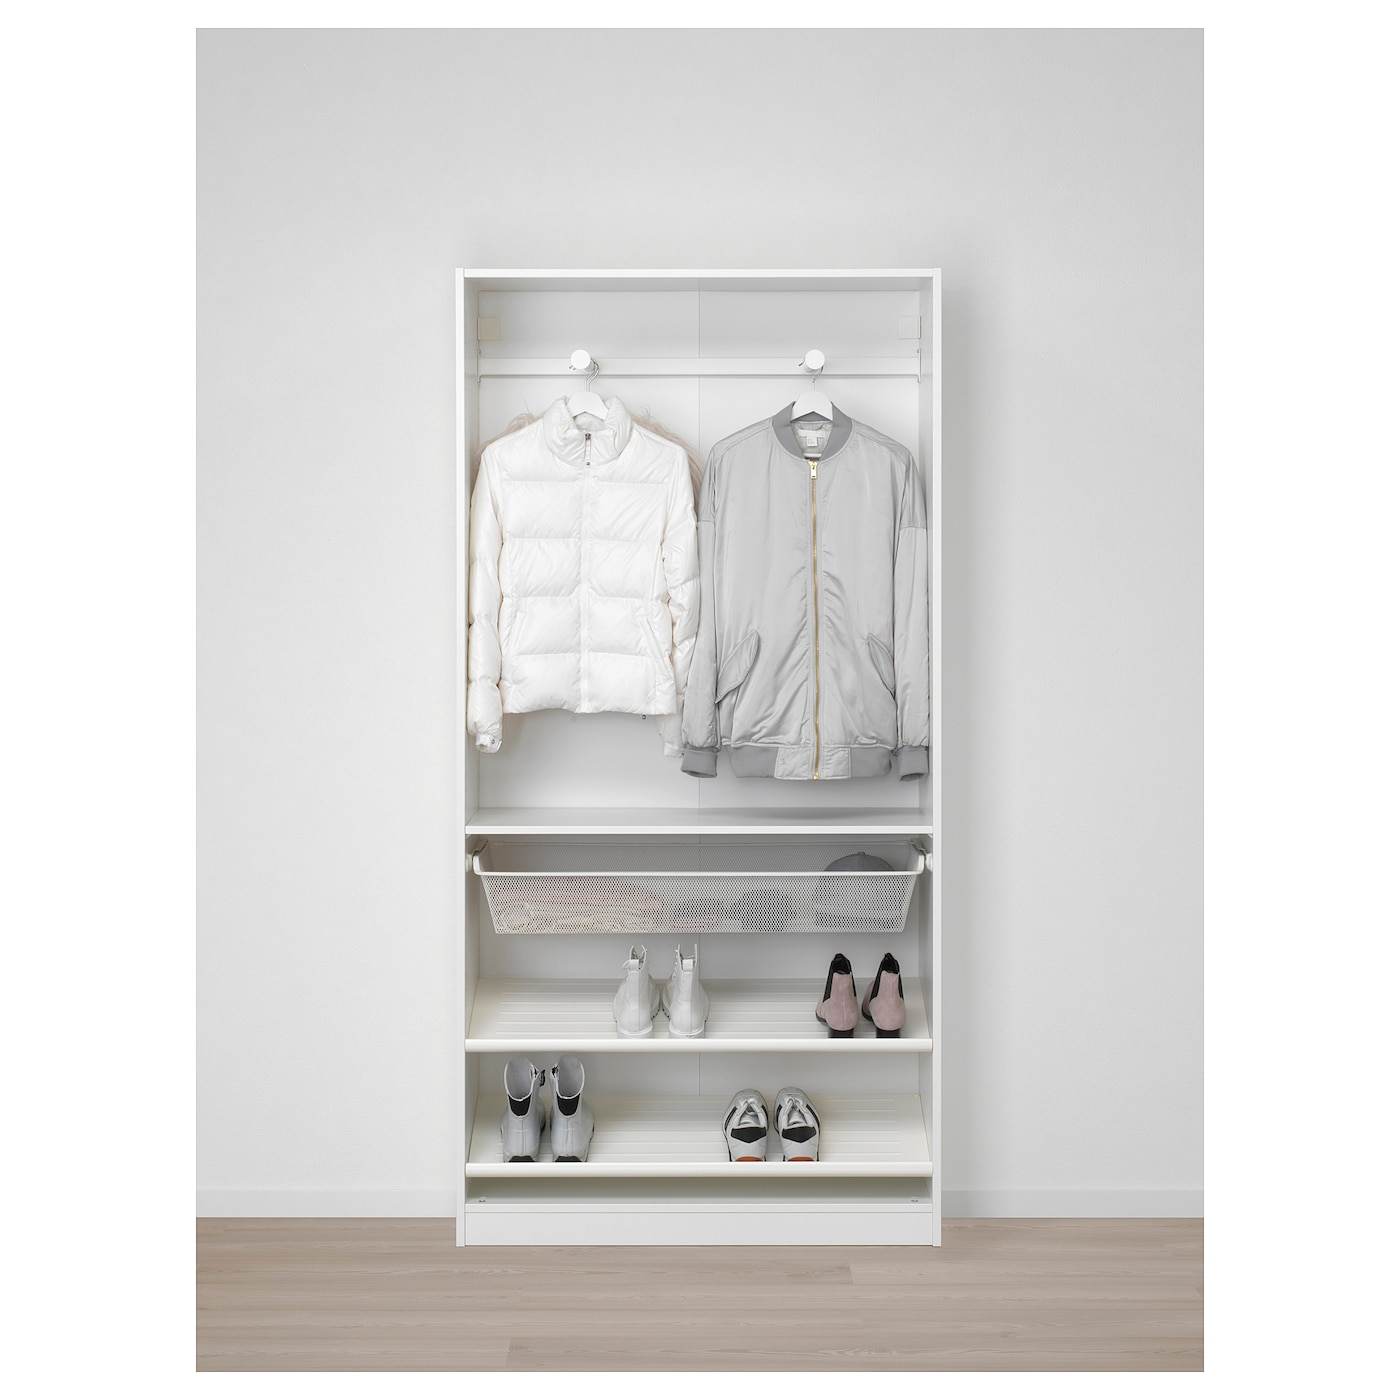 pax armoire penderie blanc forsand vikedal 100 x 38 x 201 cm ikea. Black Bedroom Furniture Sets. Home Design Ideas